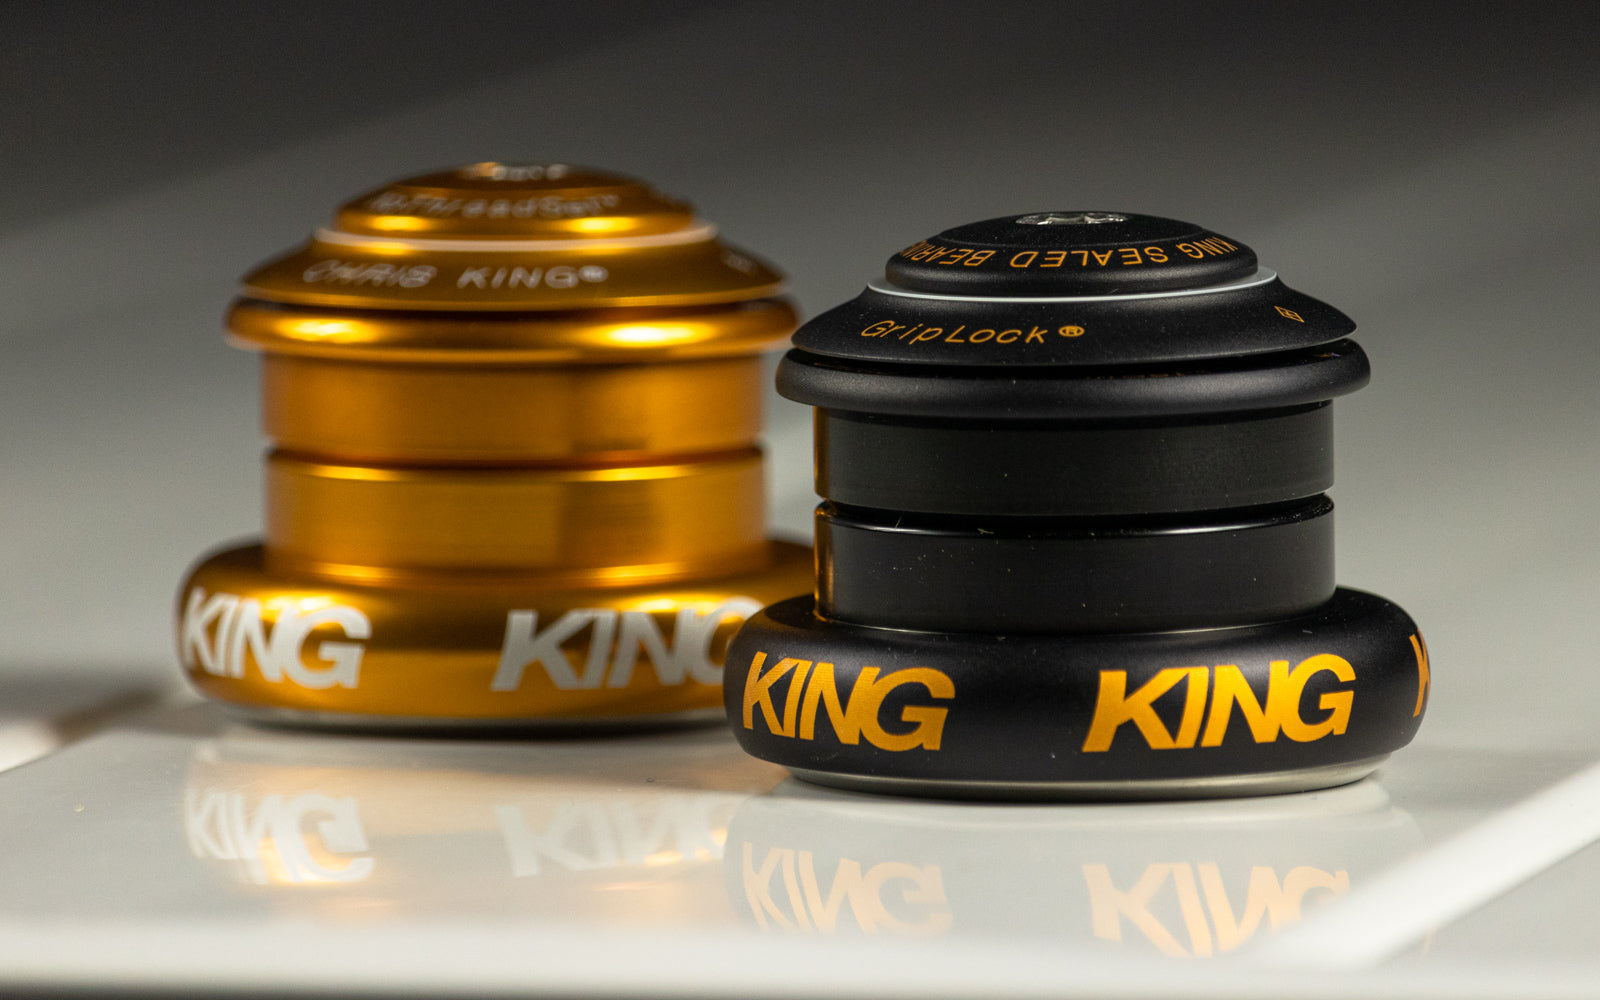 Chris King's New Colors: First Arrivals